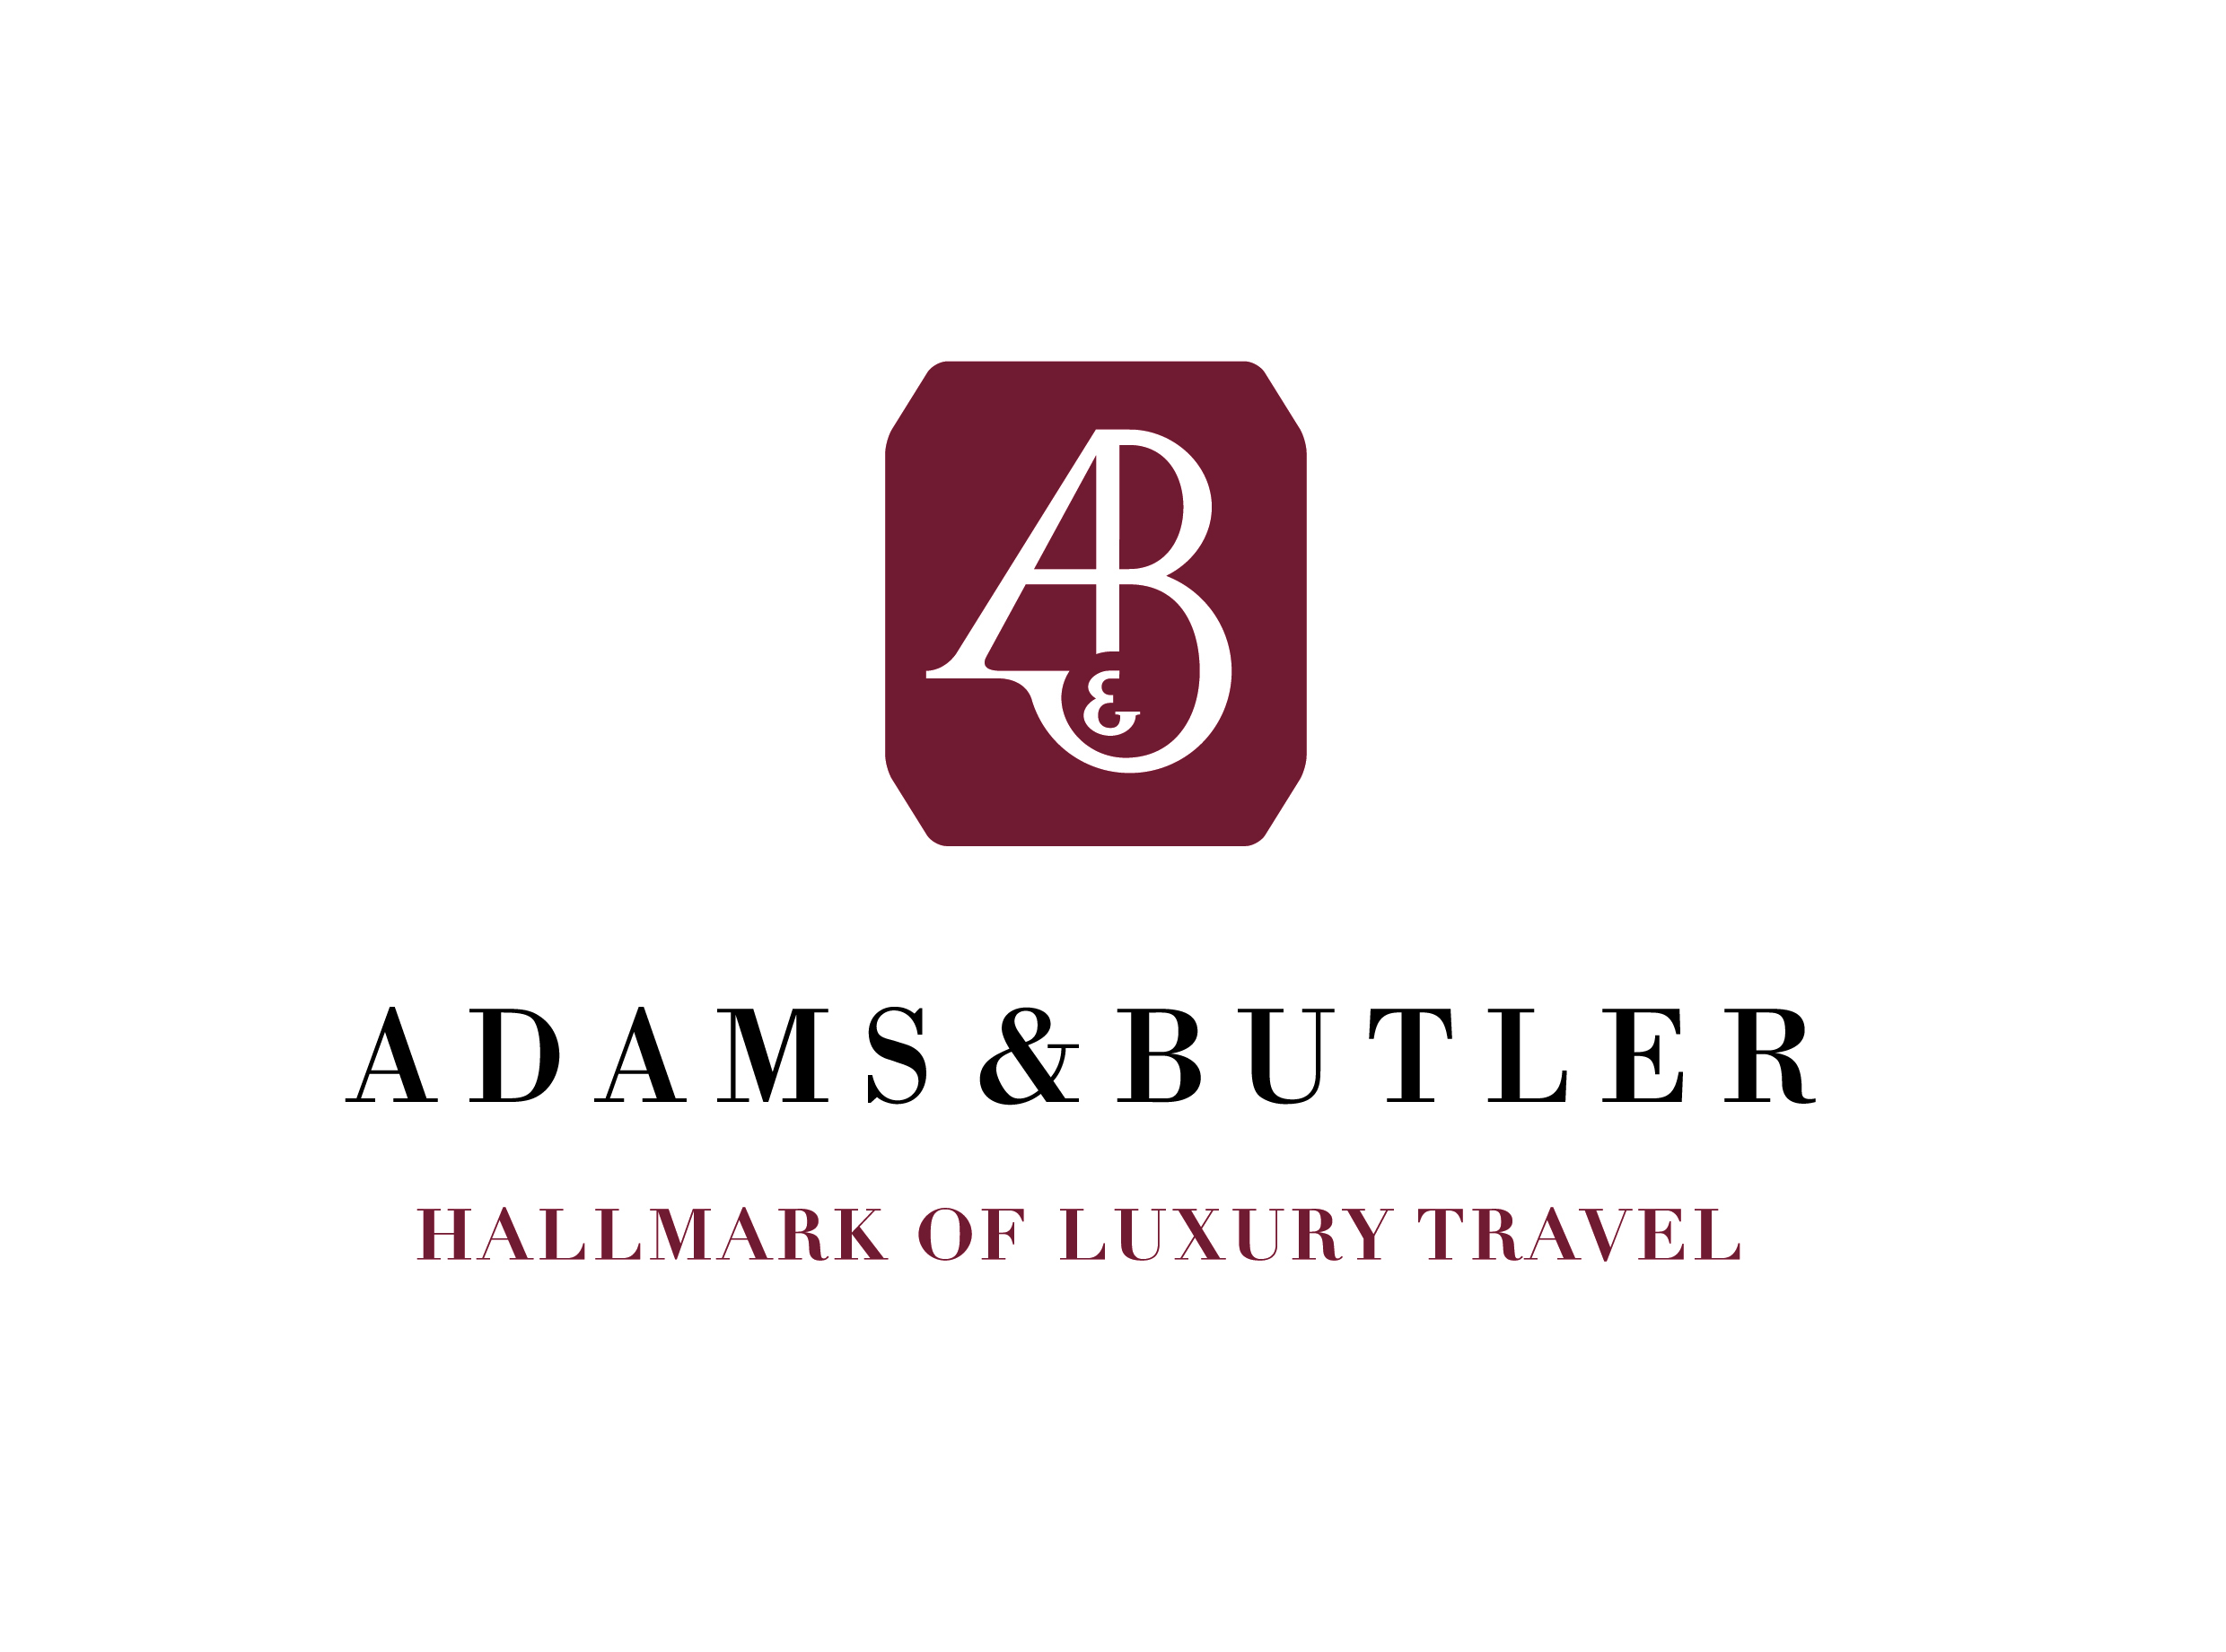 Adams & Butler – Hallmark of Luxury Travel